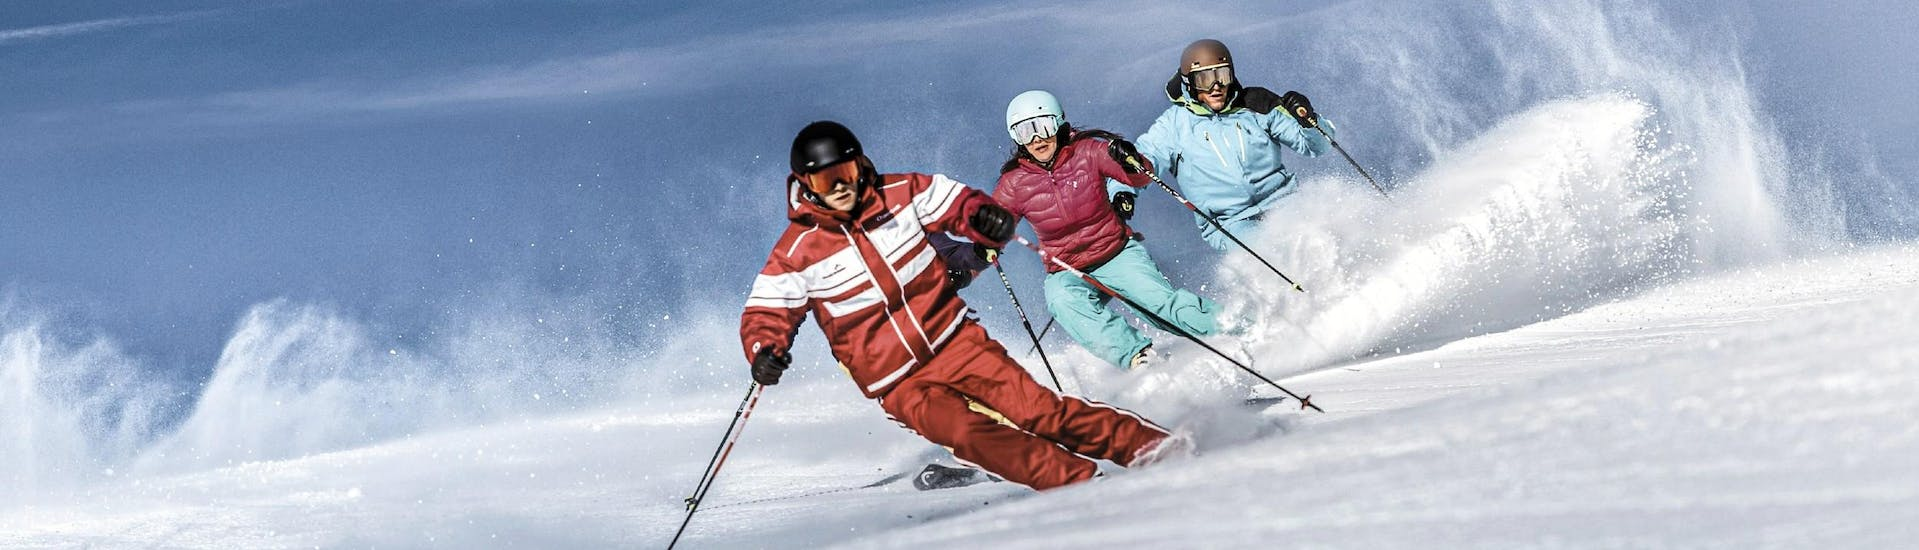 During the Adult Ski Lessons for All Levels with Skischule Schruns, the participants practice their carving technique with the help of an experienced ski instructor.